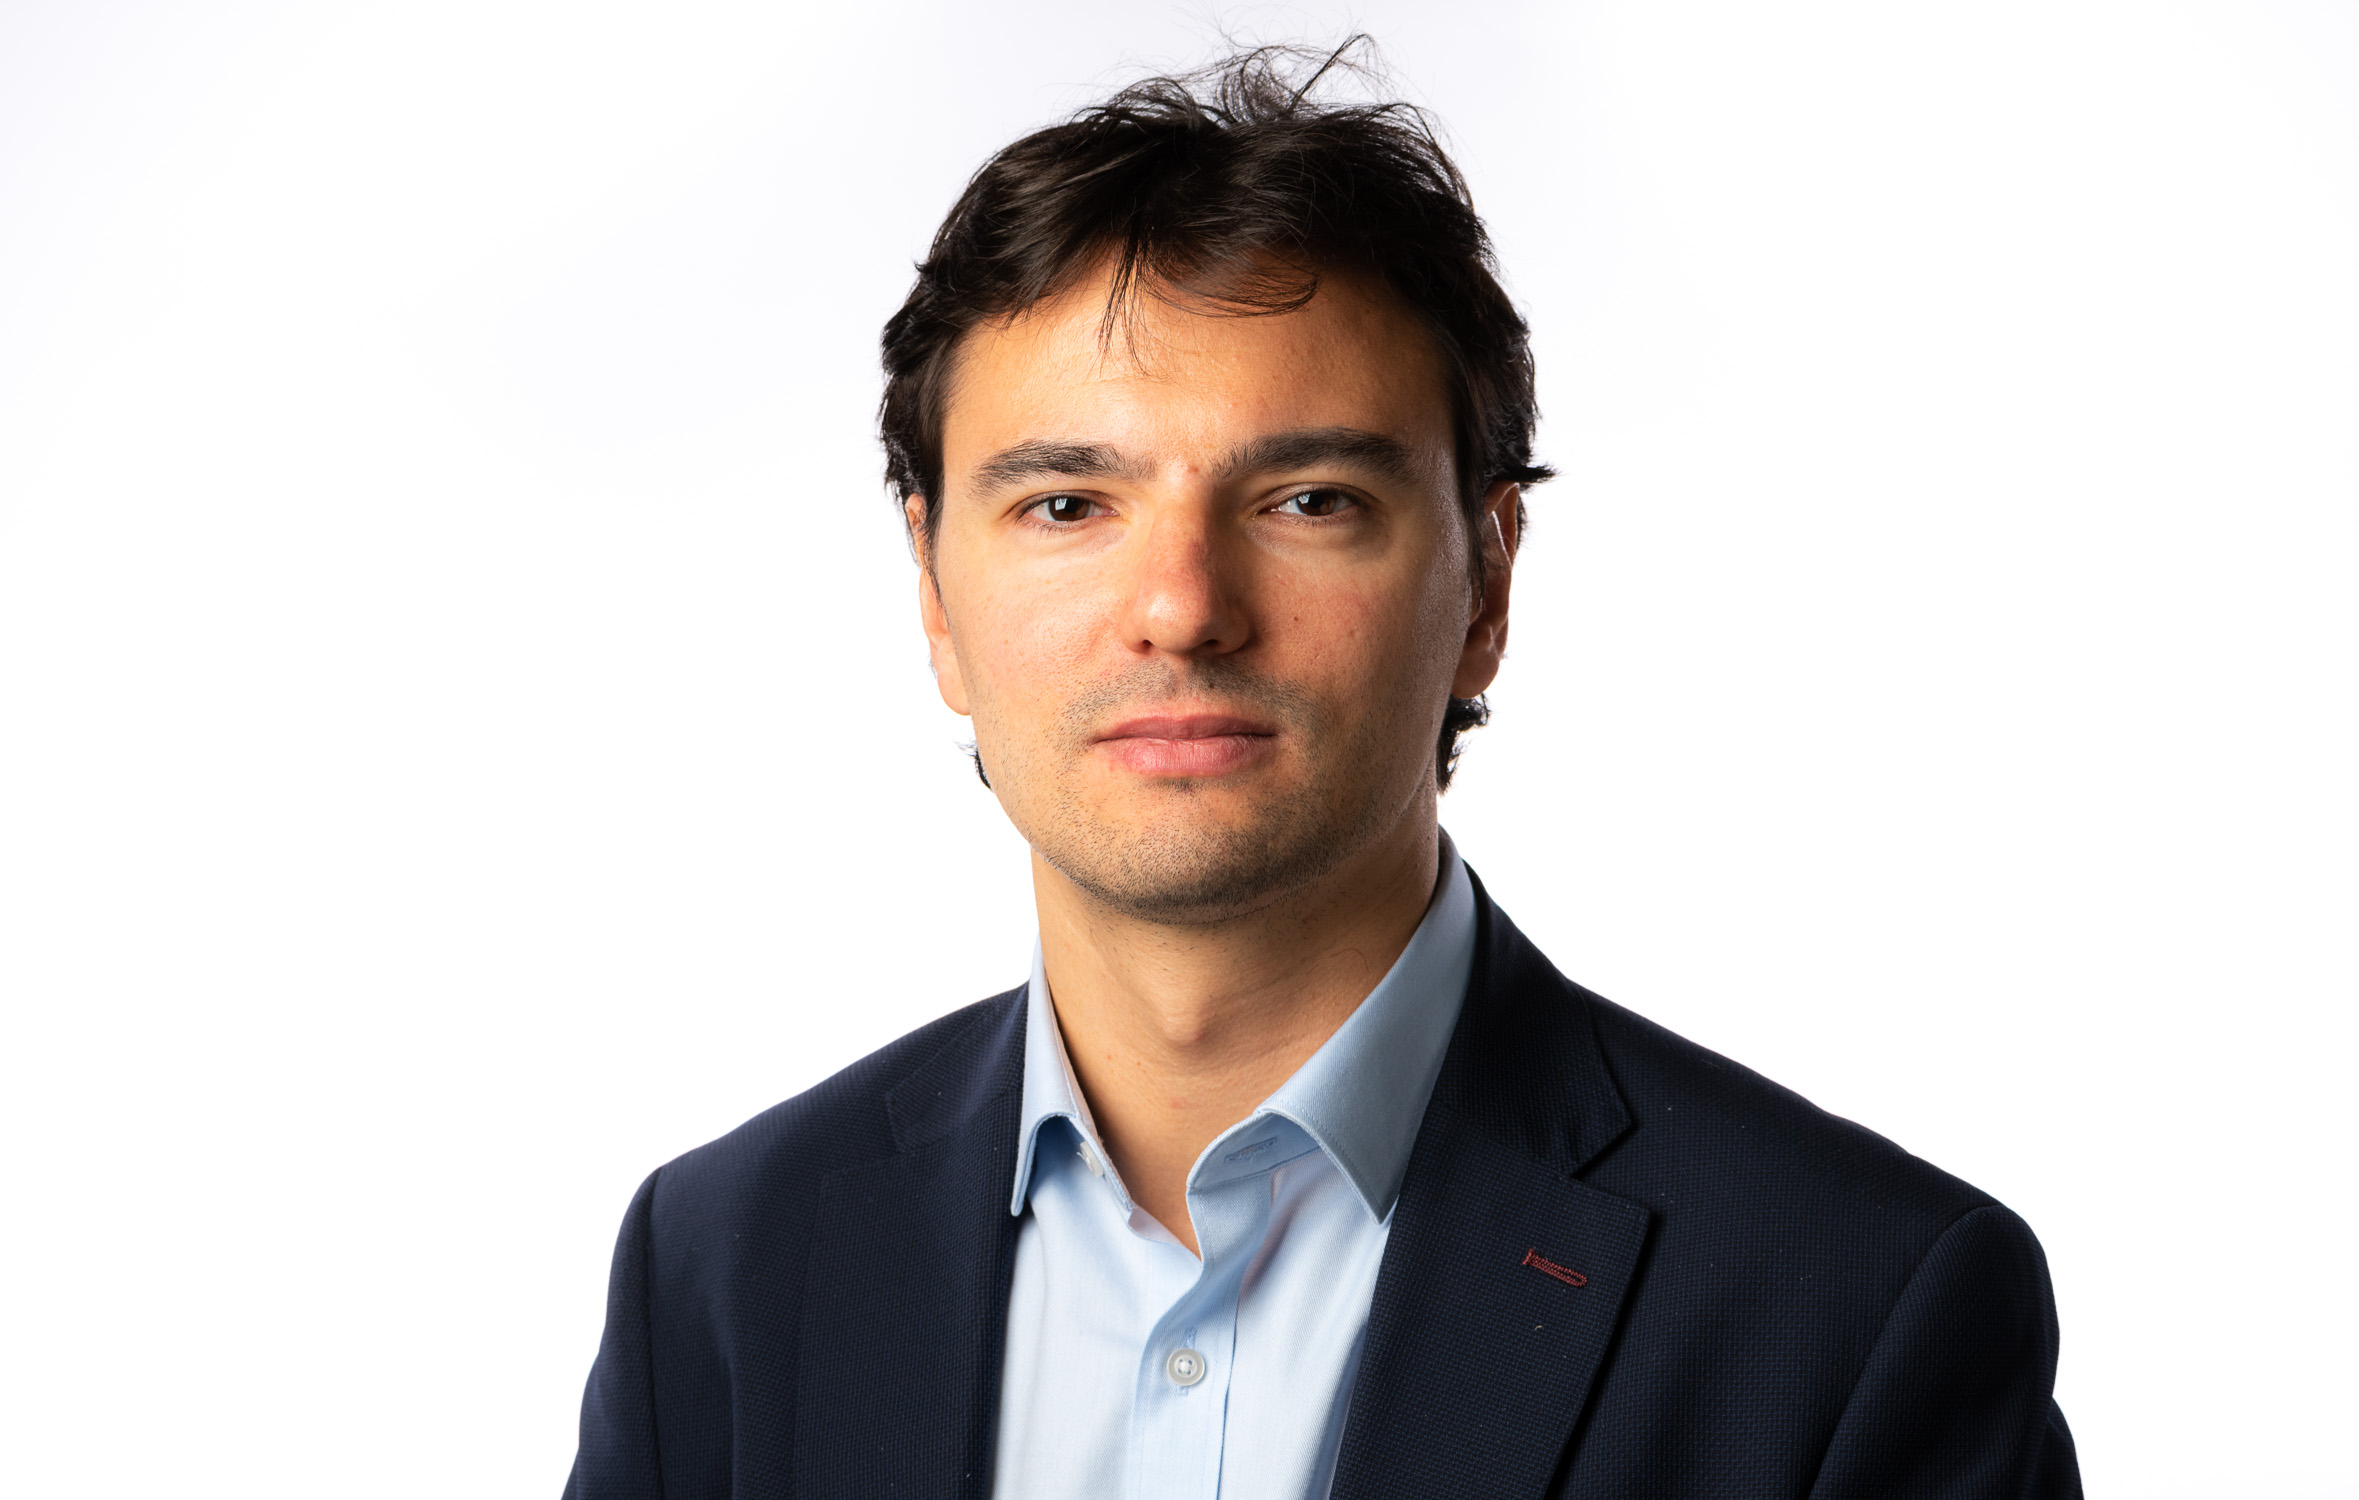 Photo of Stefano Baruffaldi